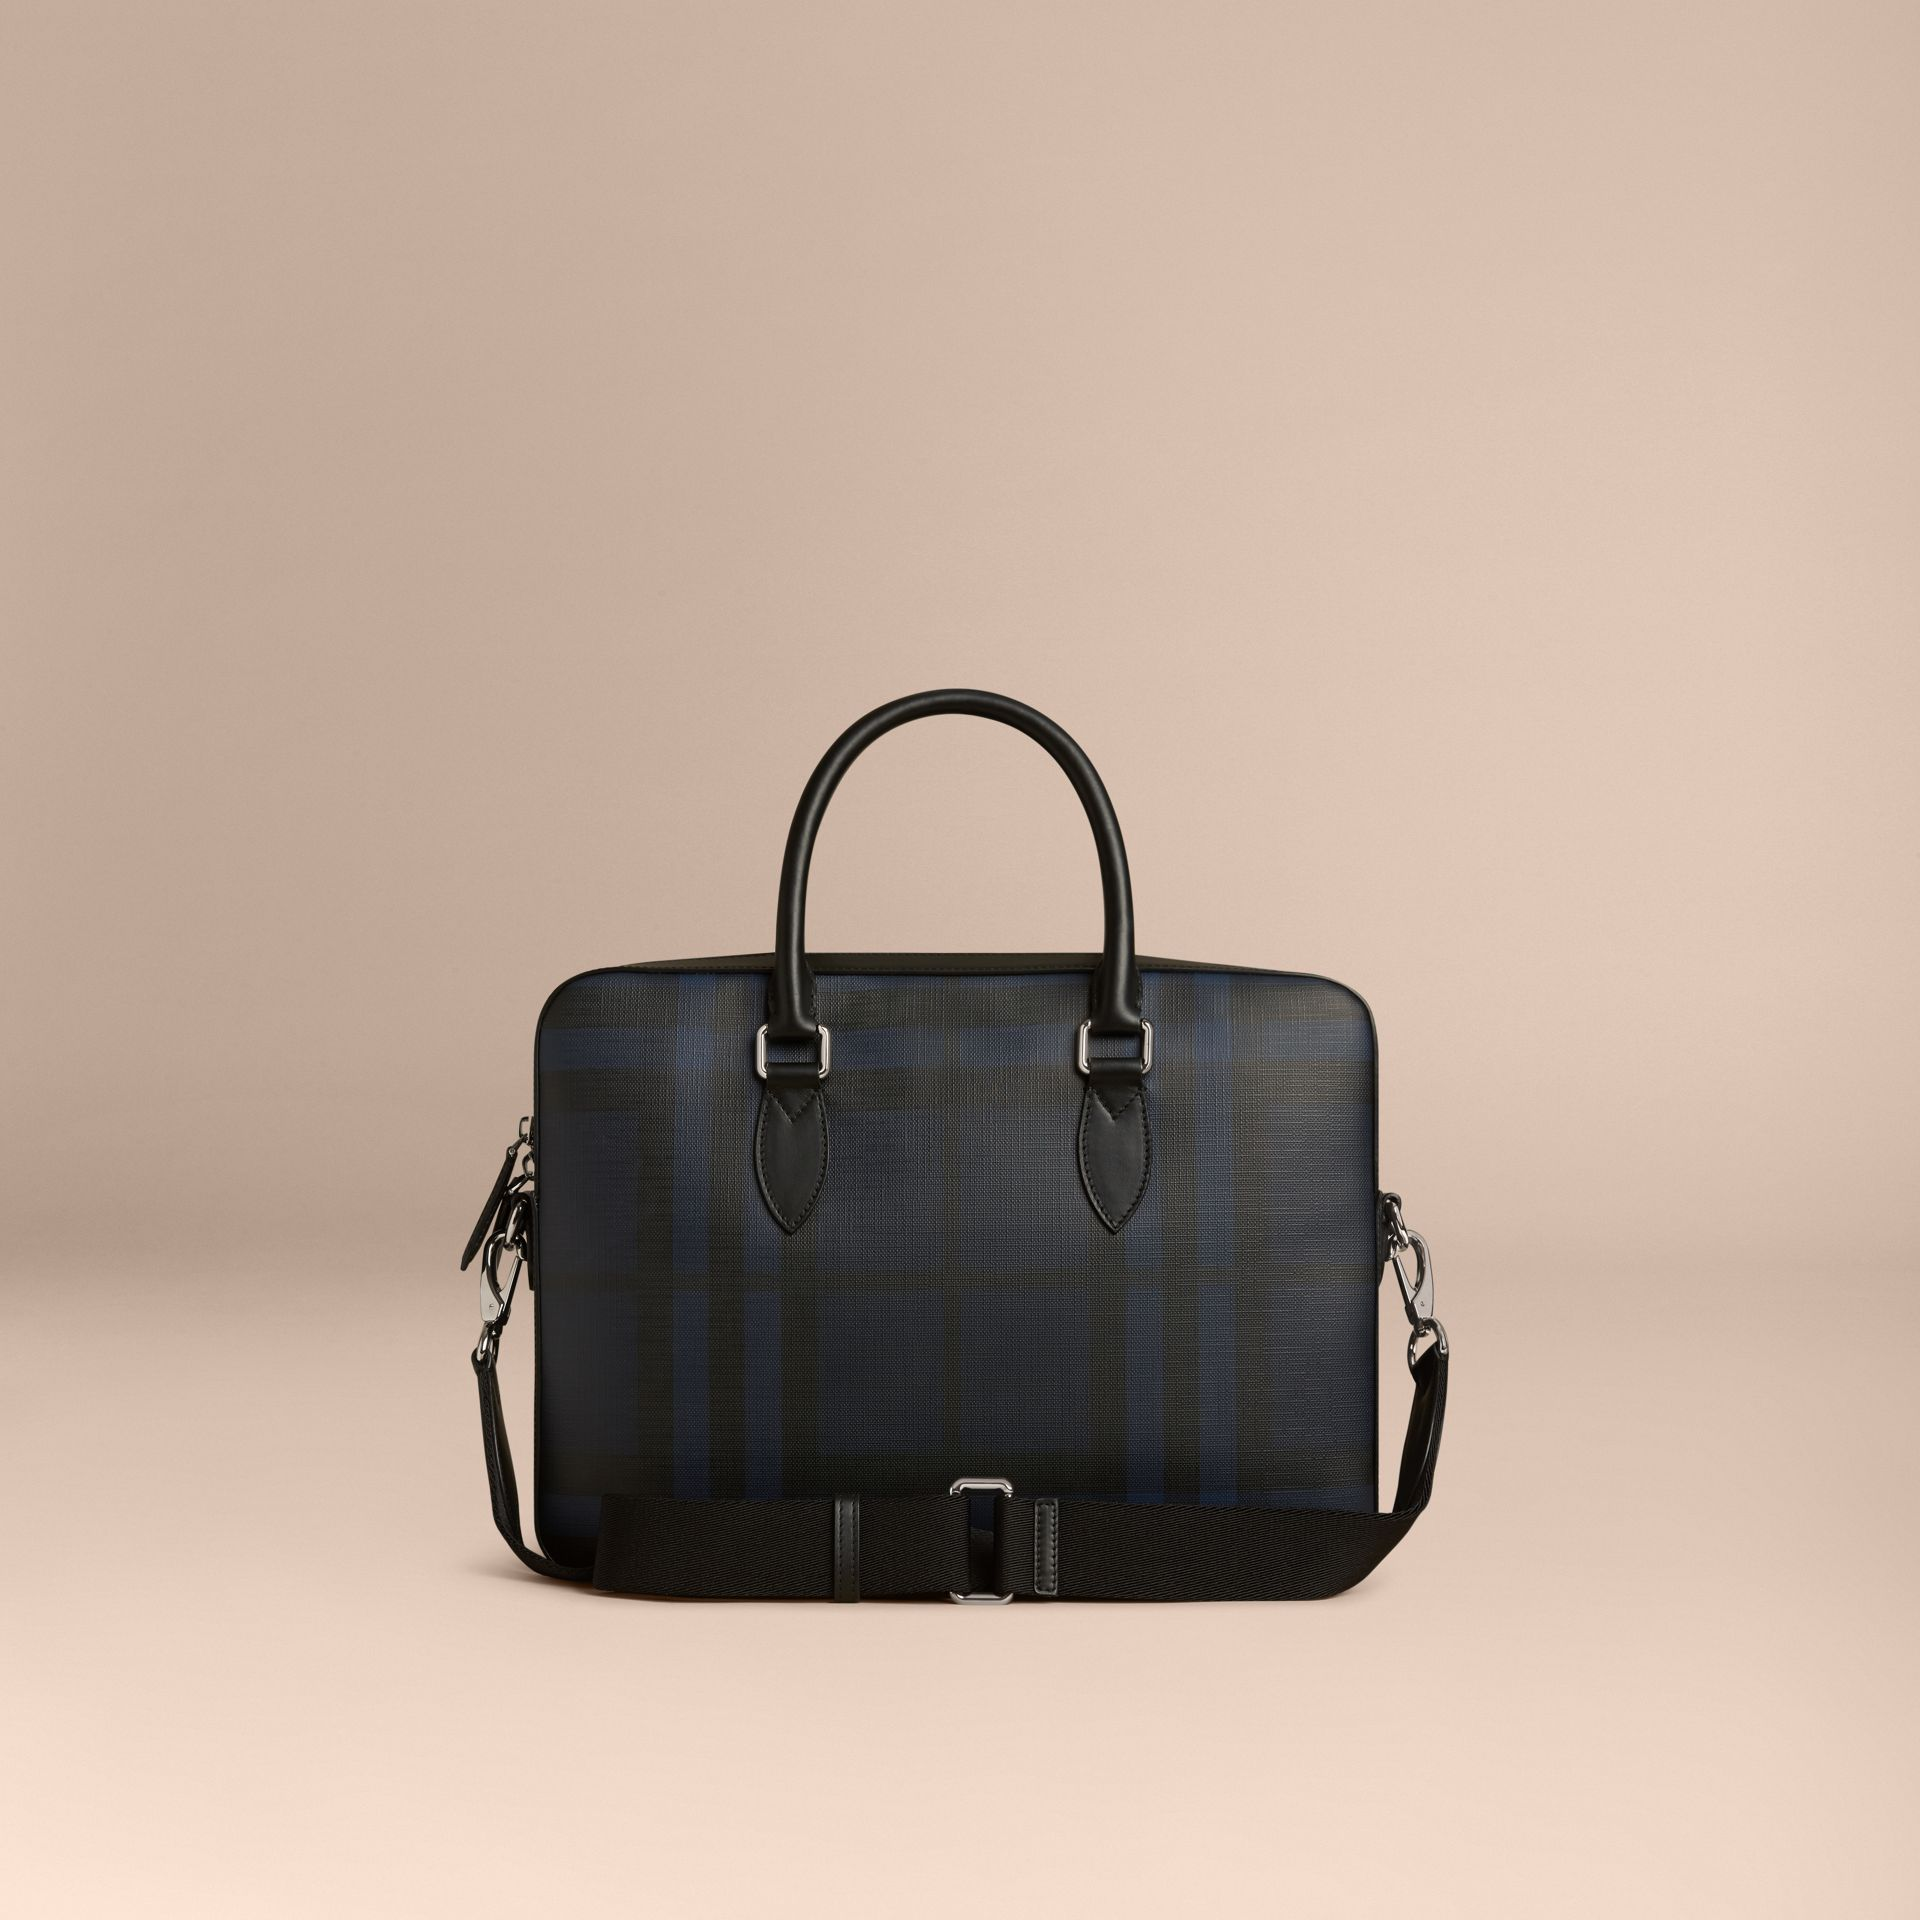 Medium Leather Trim London Check Briefcase in Navy/black - Men | Burberry Australia - gallery image 7